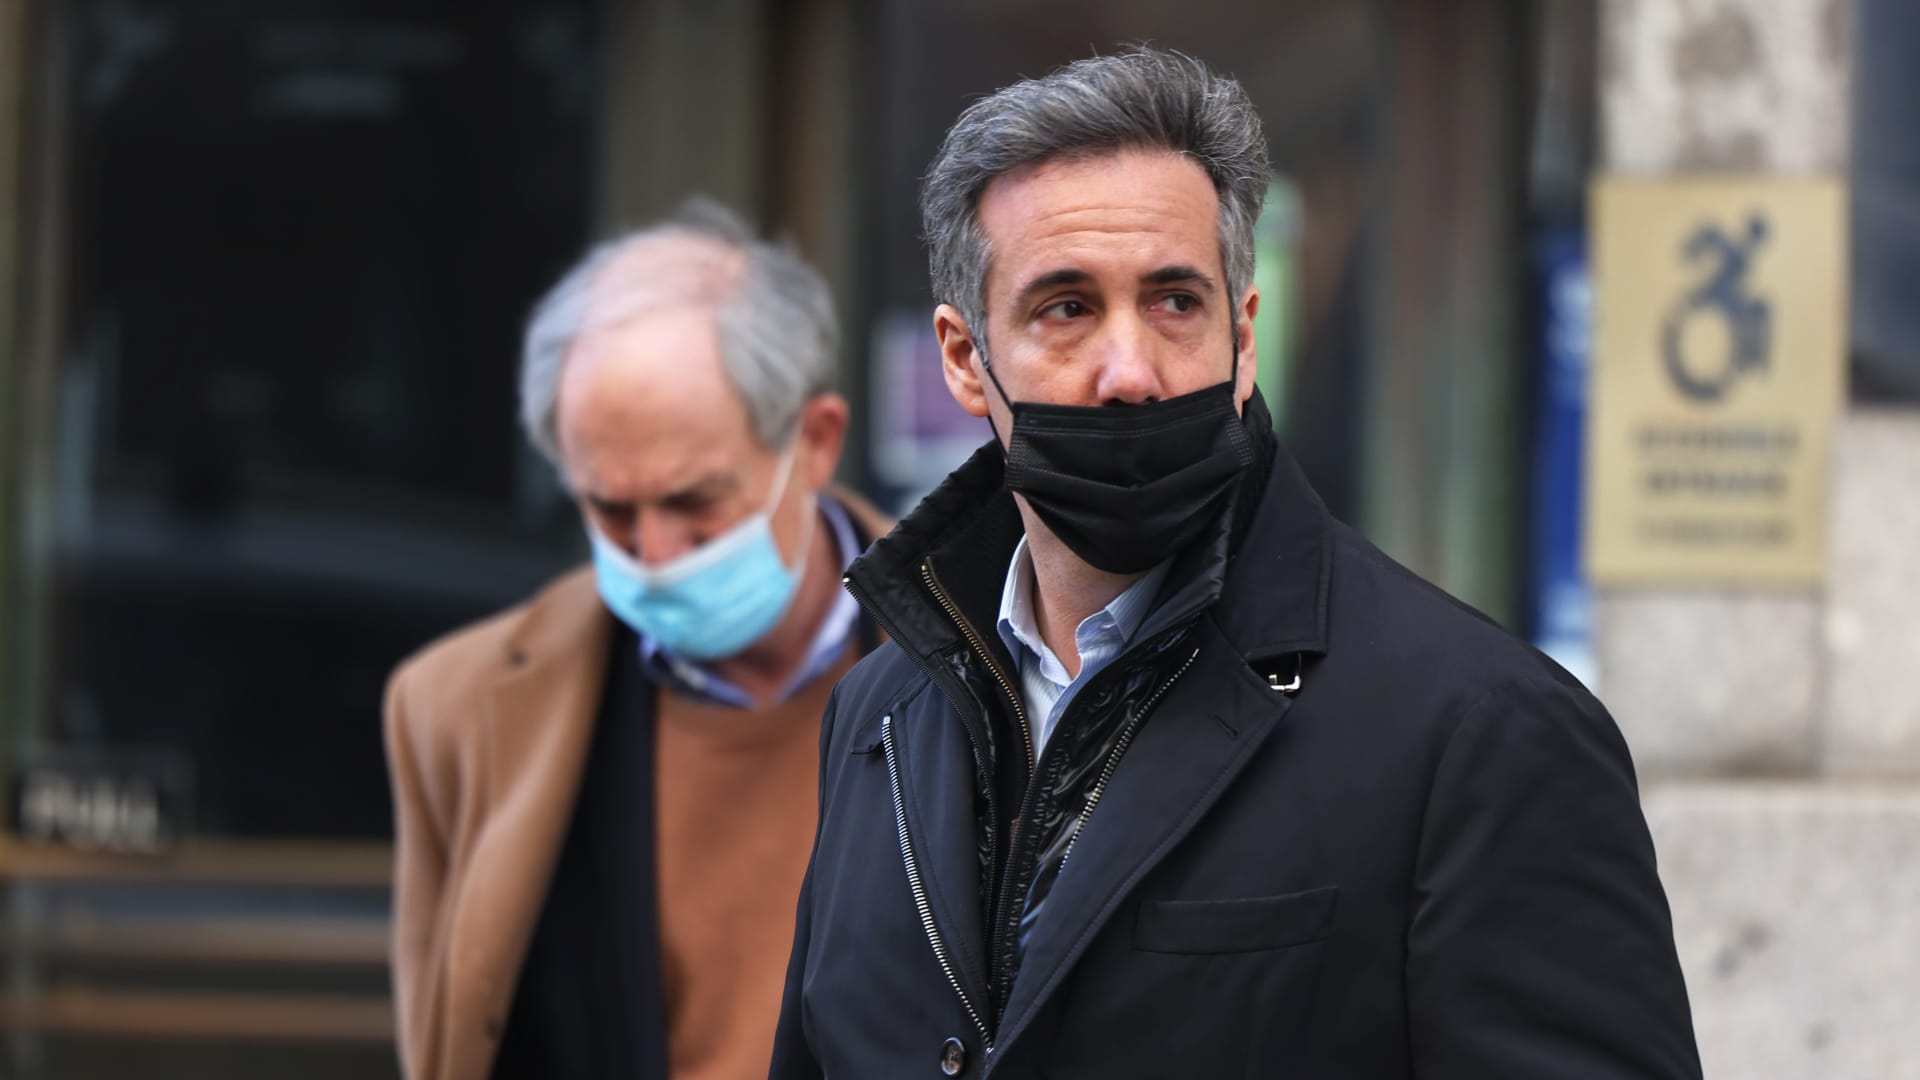 Michael Cohen exits the Manhattan district attorney's office on March 19, 2021 in New York City.